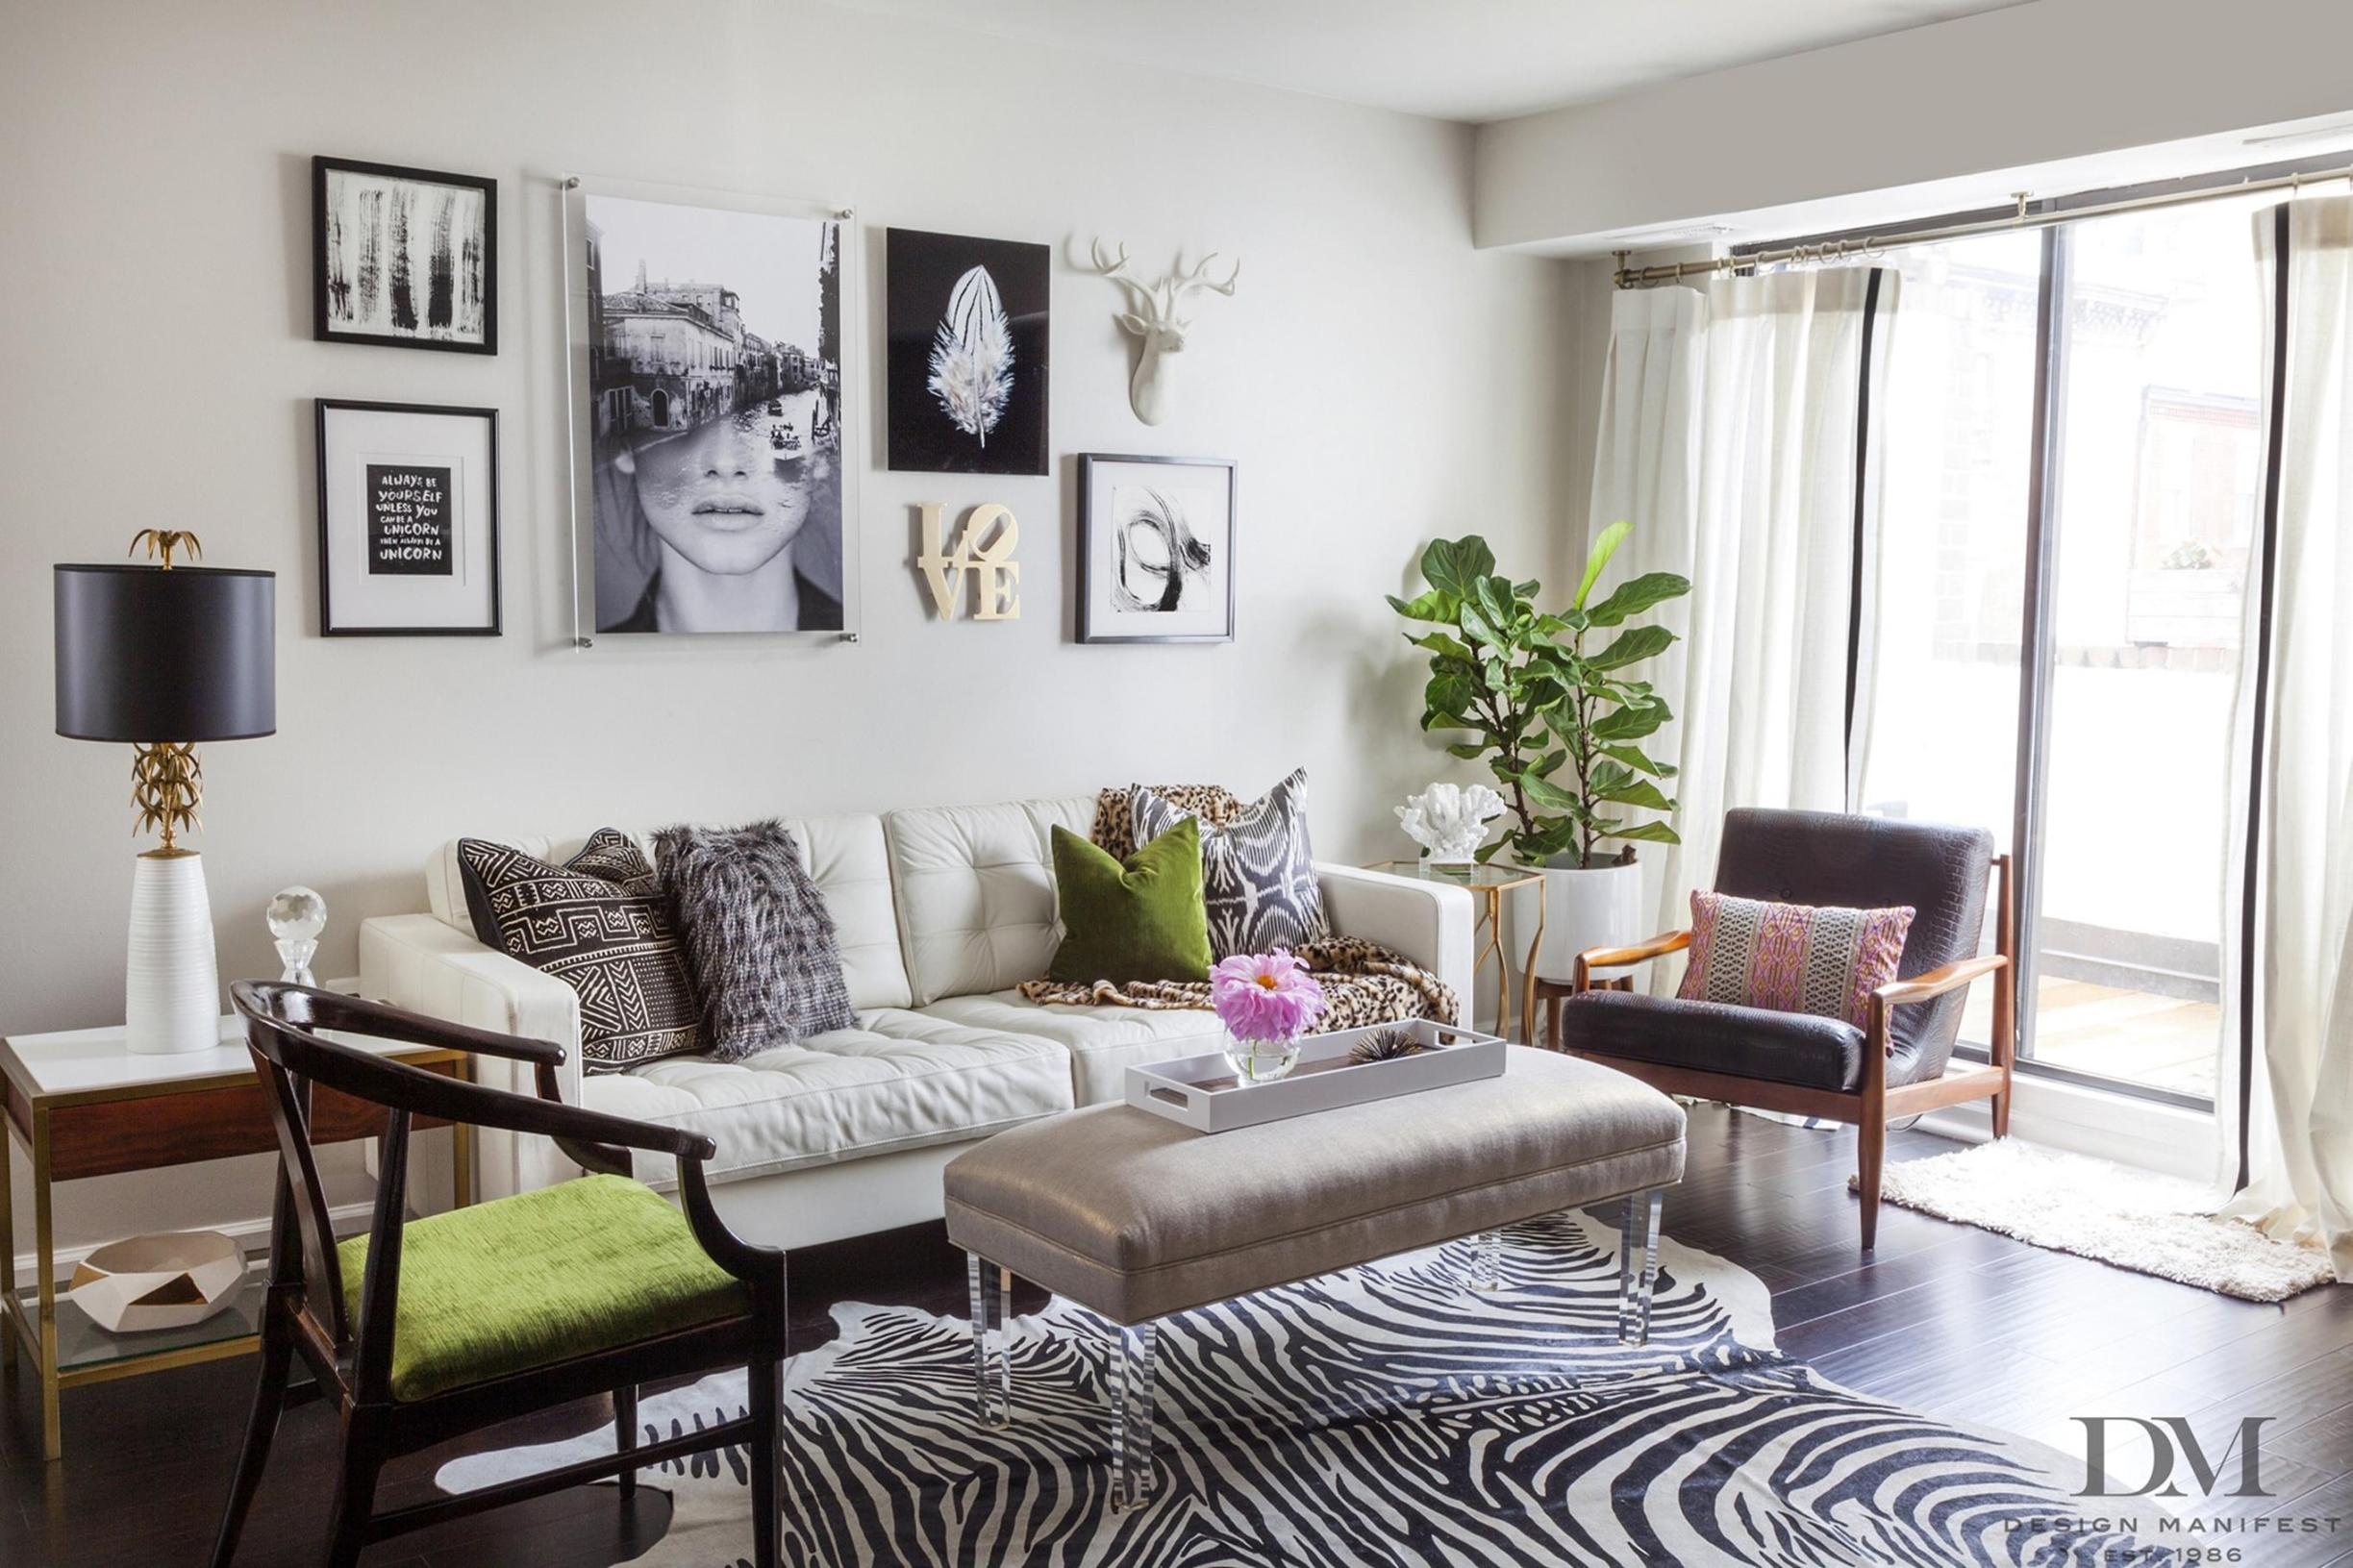 City Chic Living Room Decorating Ideas On a Budget 14